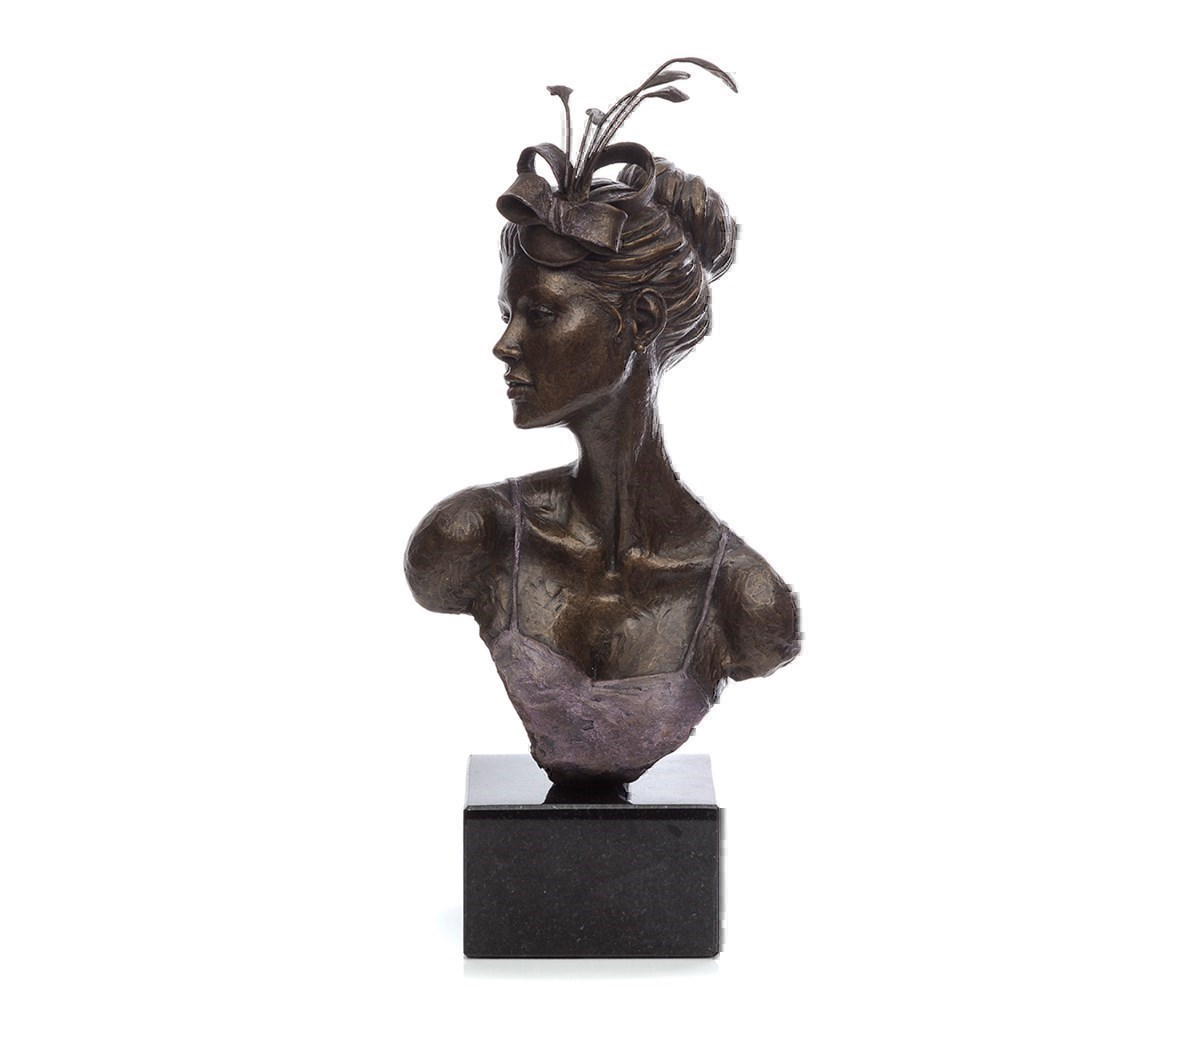 Ascot Vision by Sherree Valentine Daines - Bronze Sculpture sized 6x12 inches. Available from Whitewall Galleries